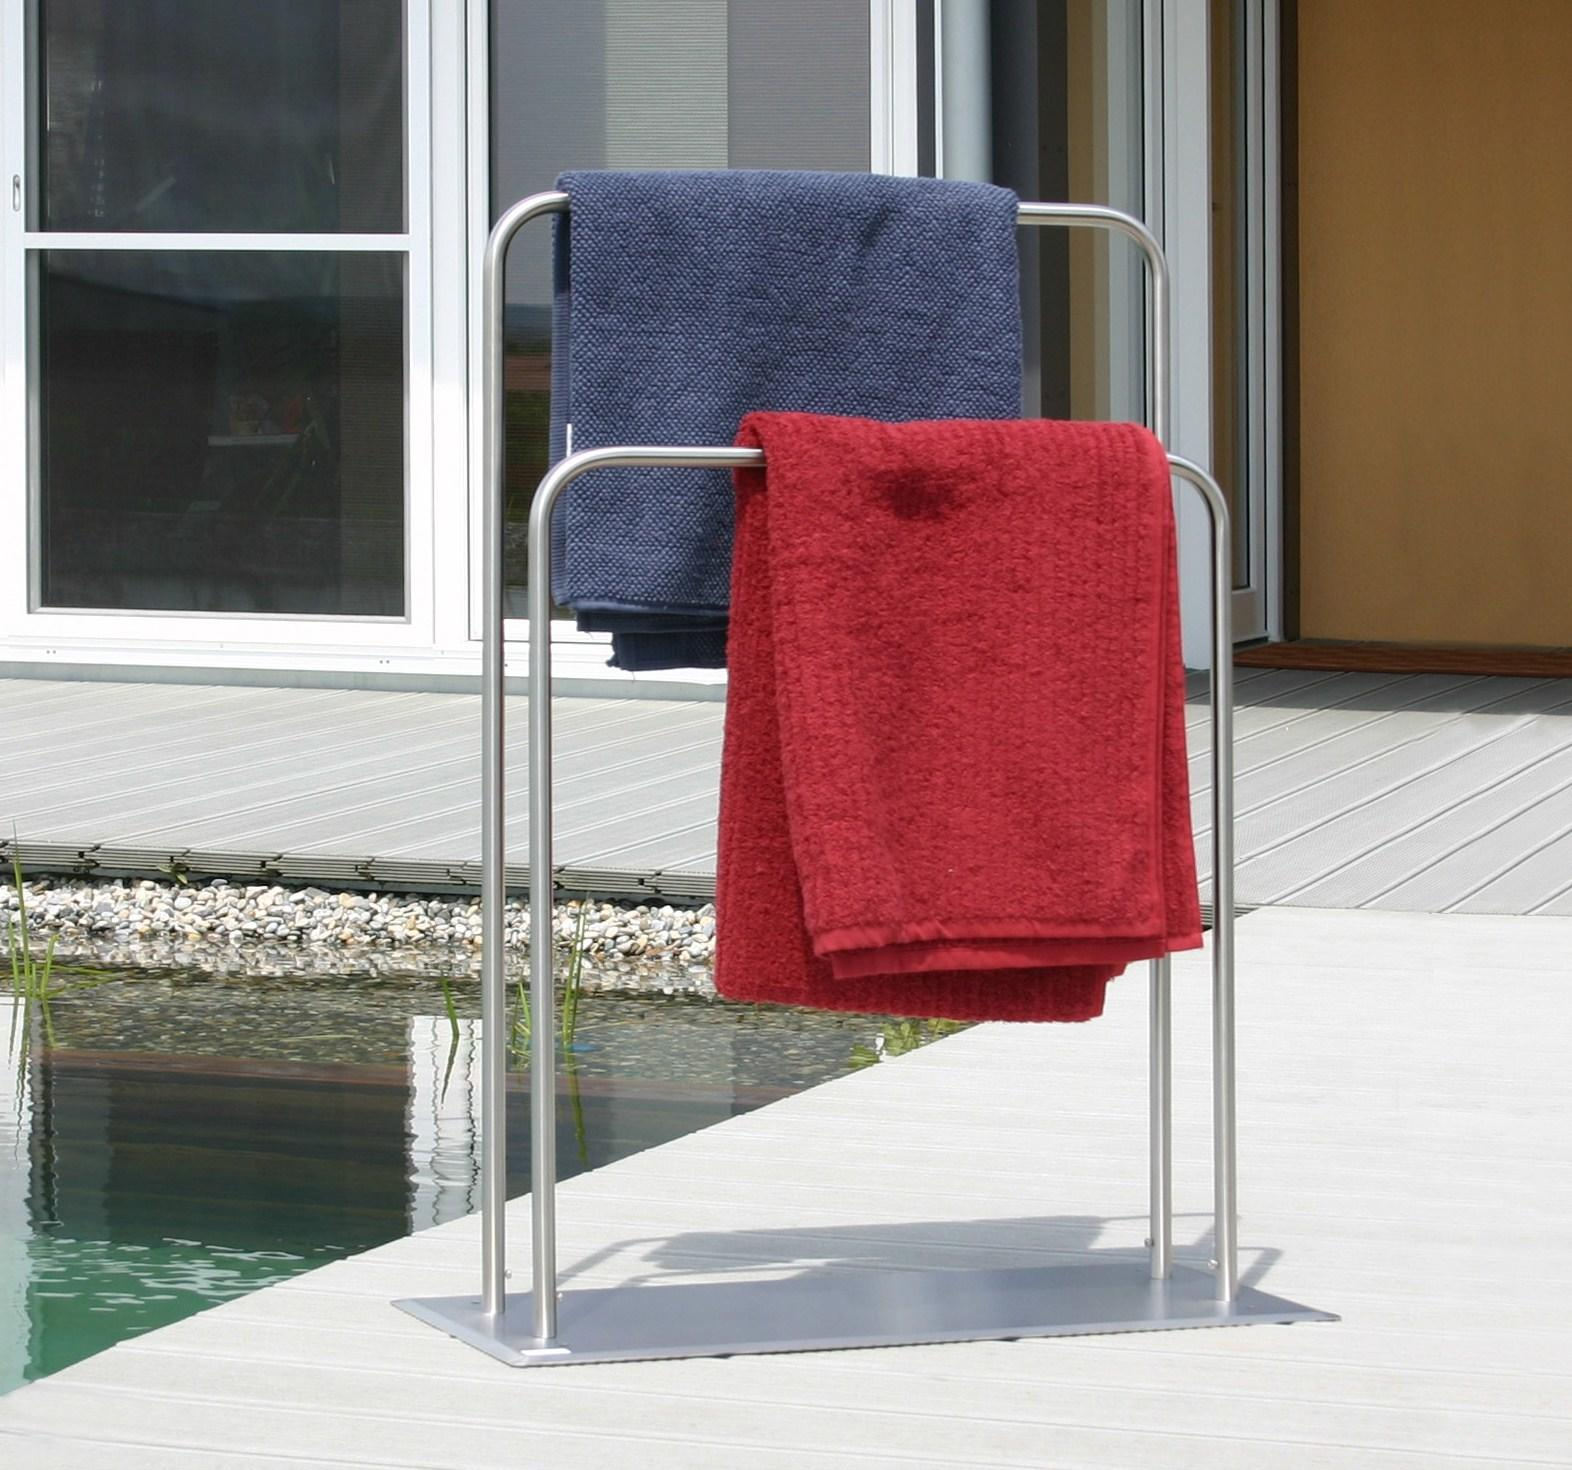 towel_rail_outdoor_garden_stainless_steel_weatherproof_swimming_pool_drying